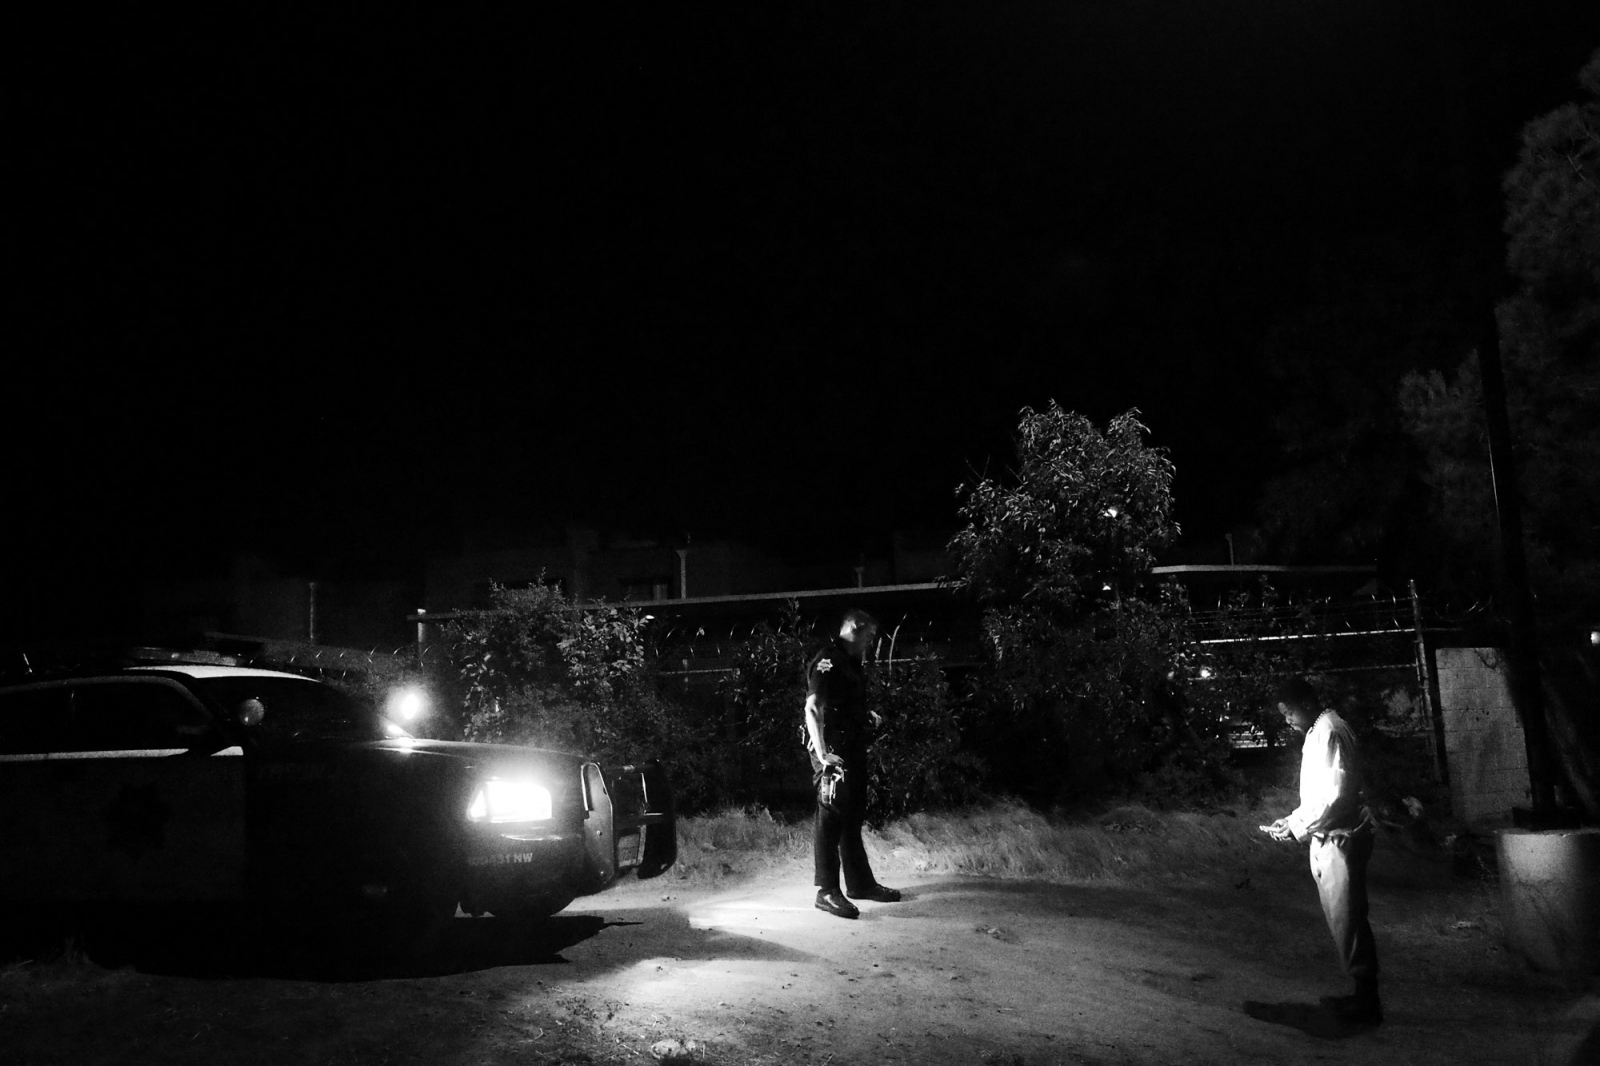 Fresno, California, 2013 A police officer from the northern district of the city has stopped a suspect to interrogate him in a notorious neighborhood.